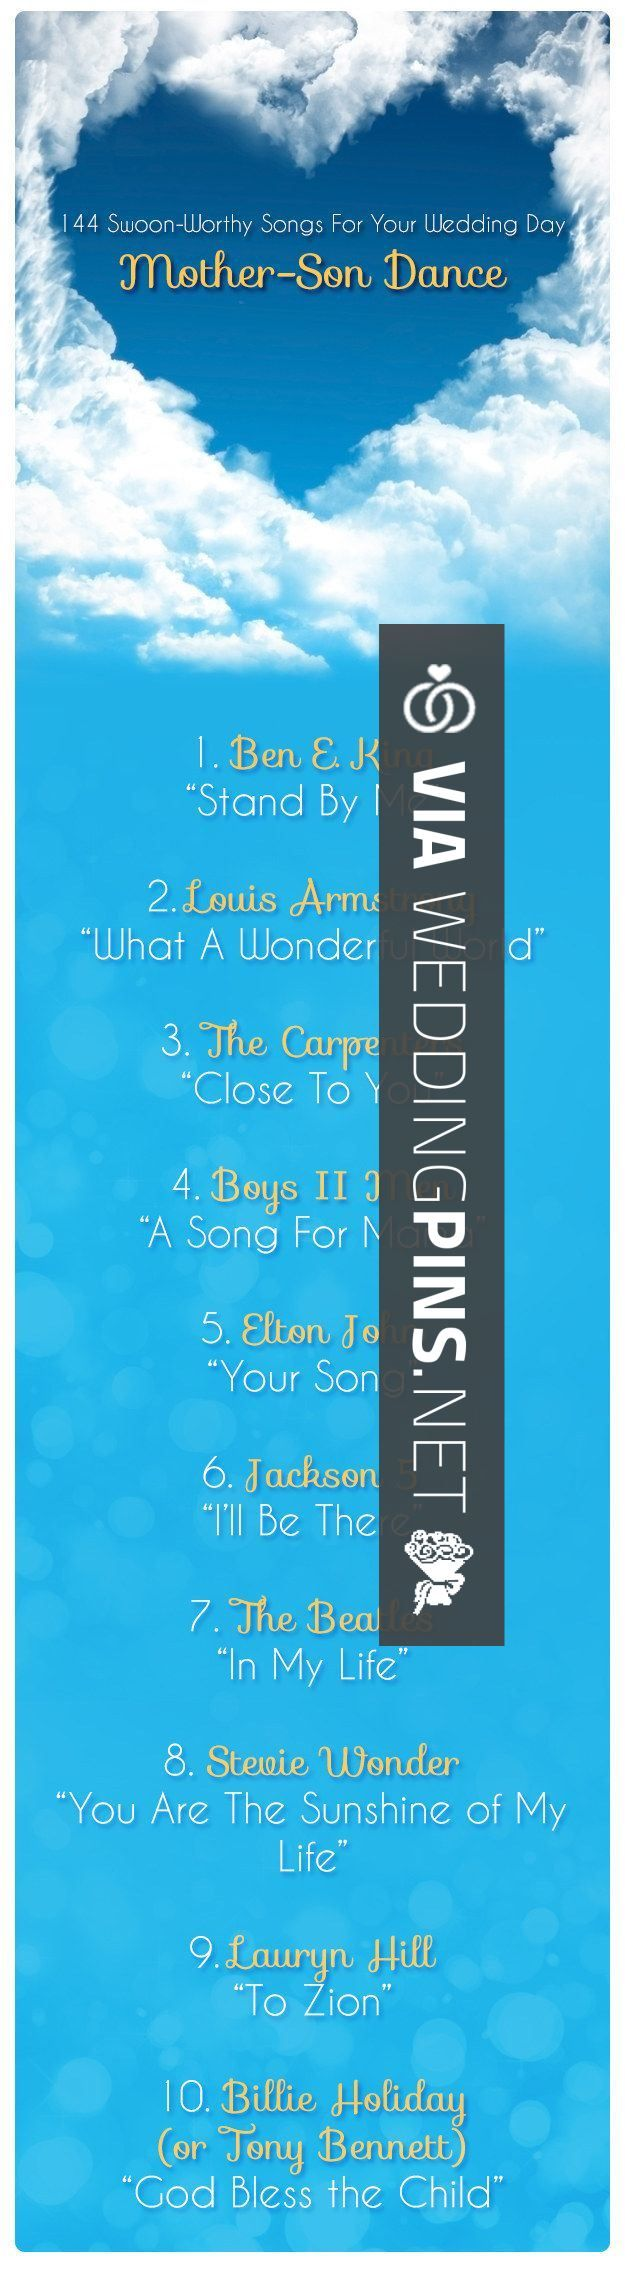 35 Best Wedding Reception Songs 2015 Images On Pinterest